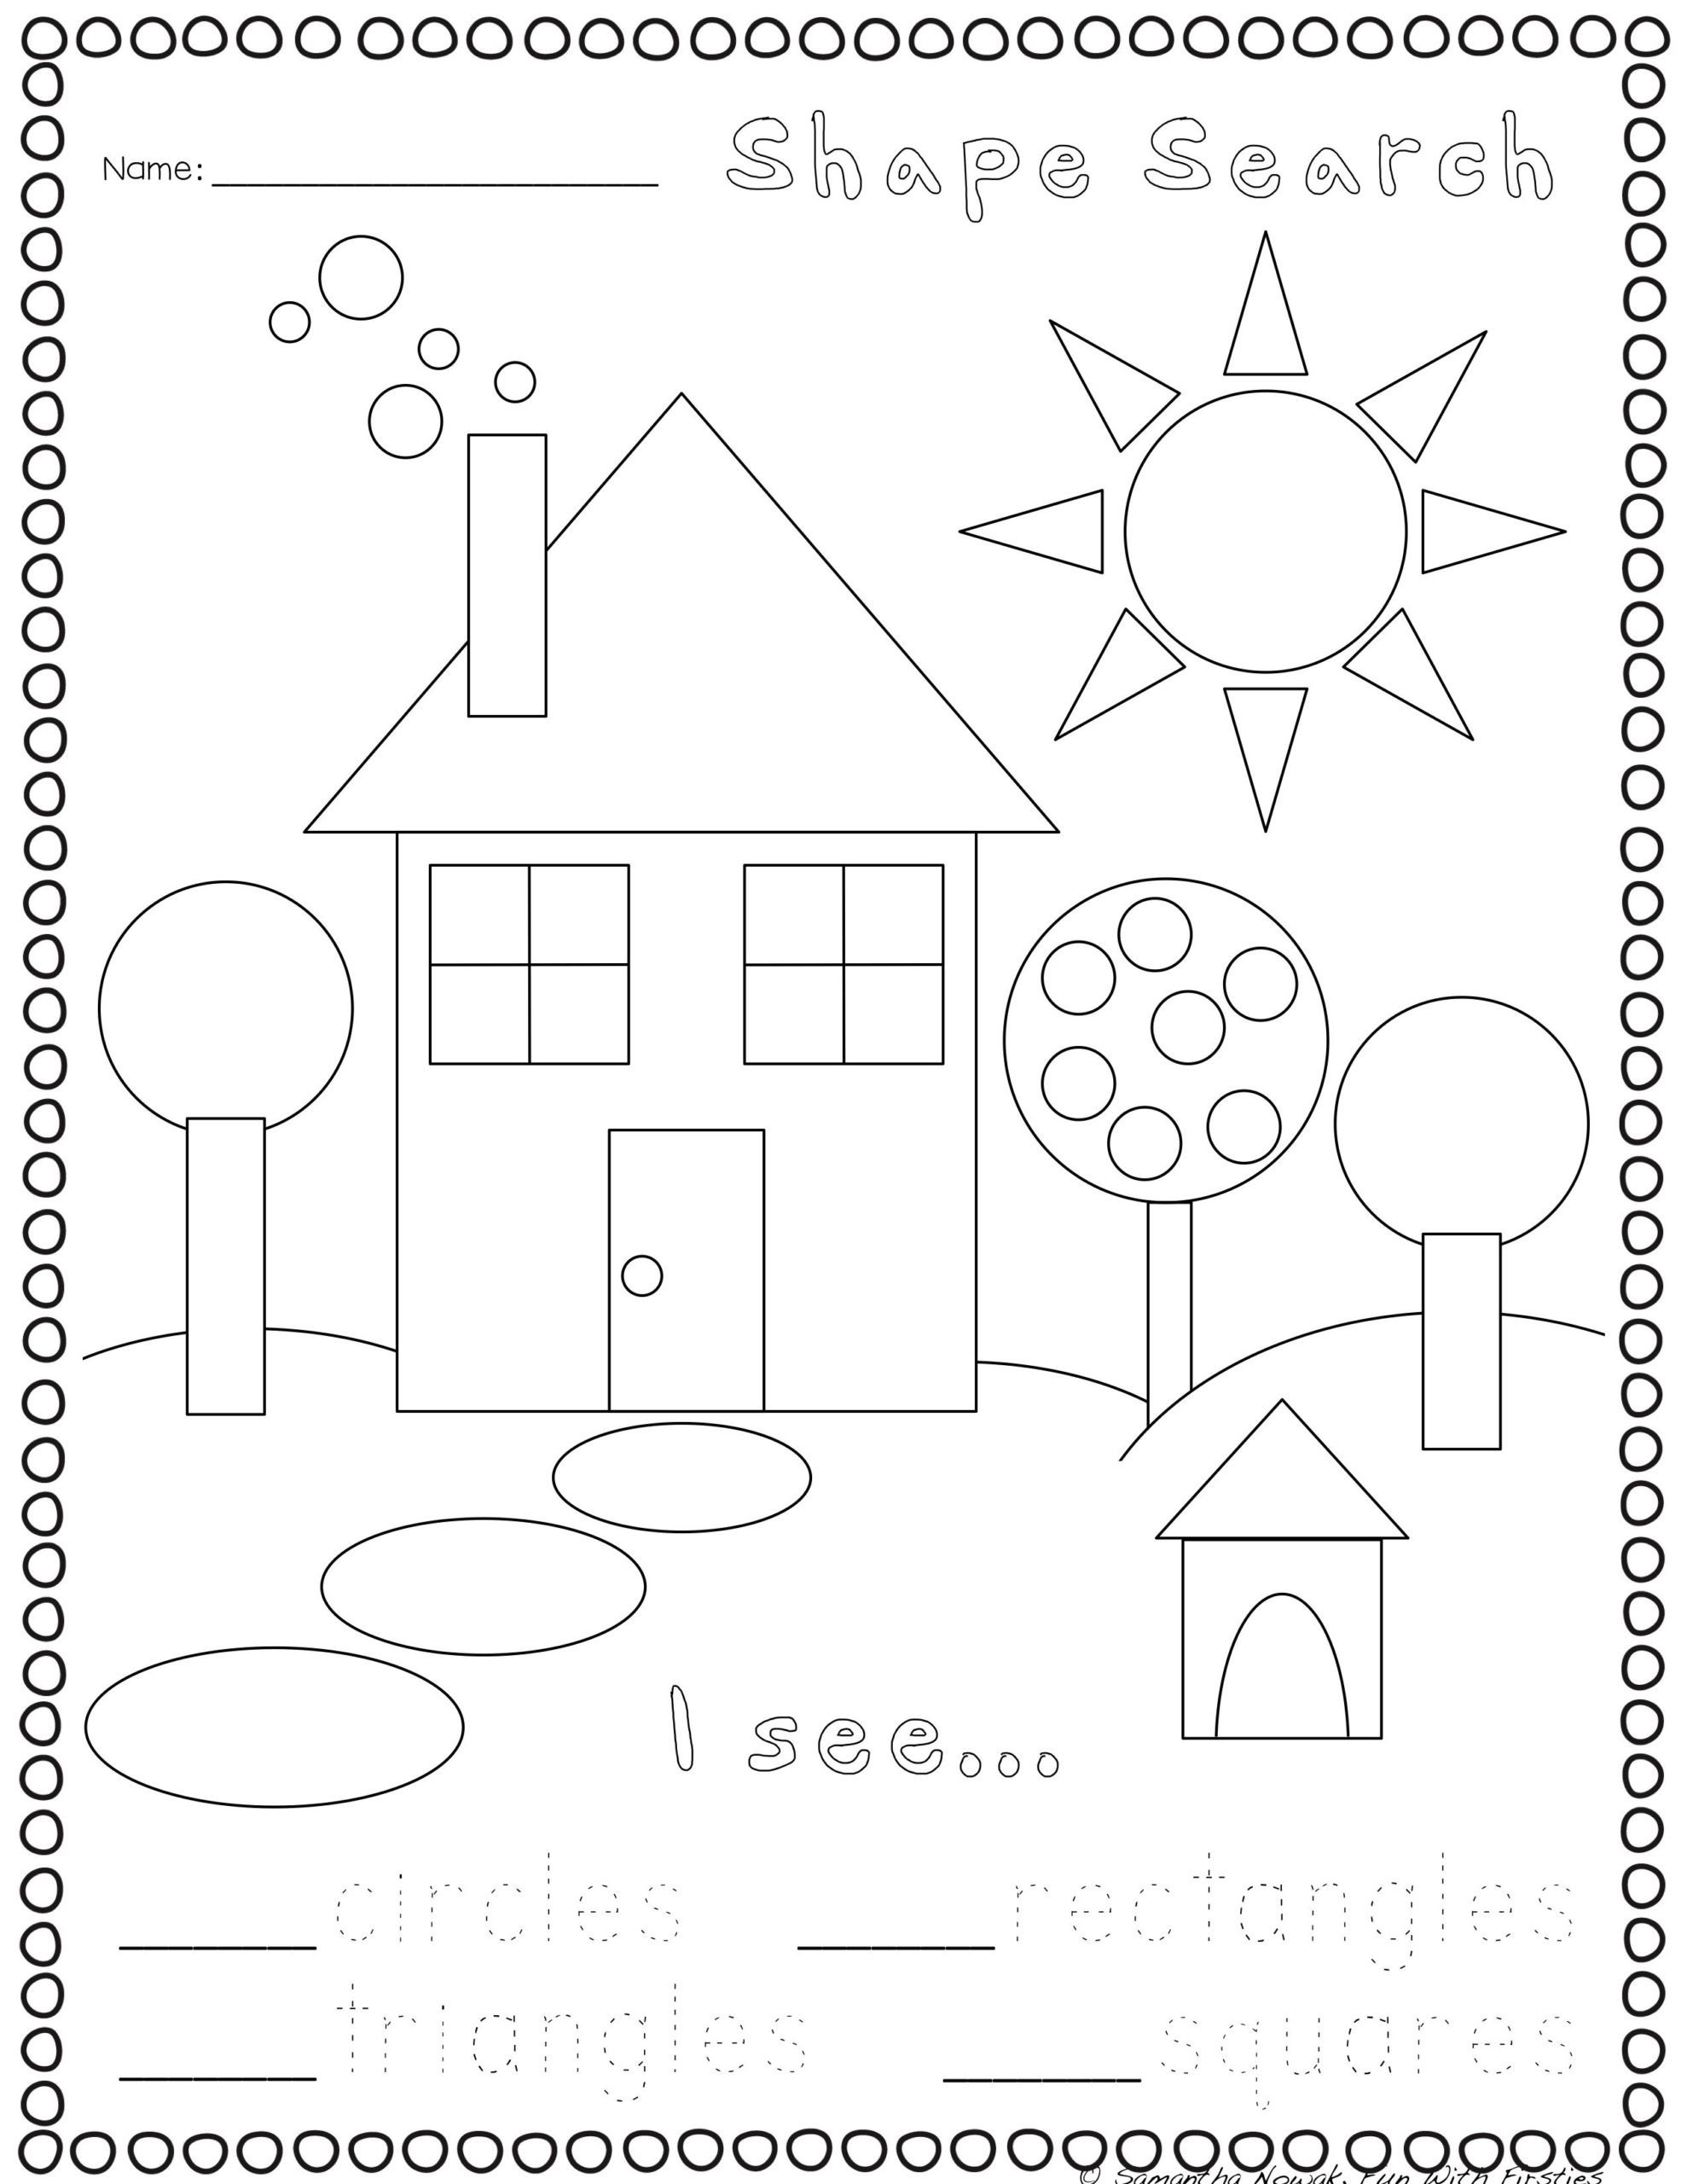 Geometric Shapes Patterns Worksheets Print Go Geometry Practice Worksheets Shapes Number and